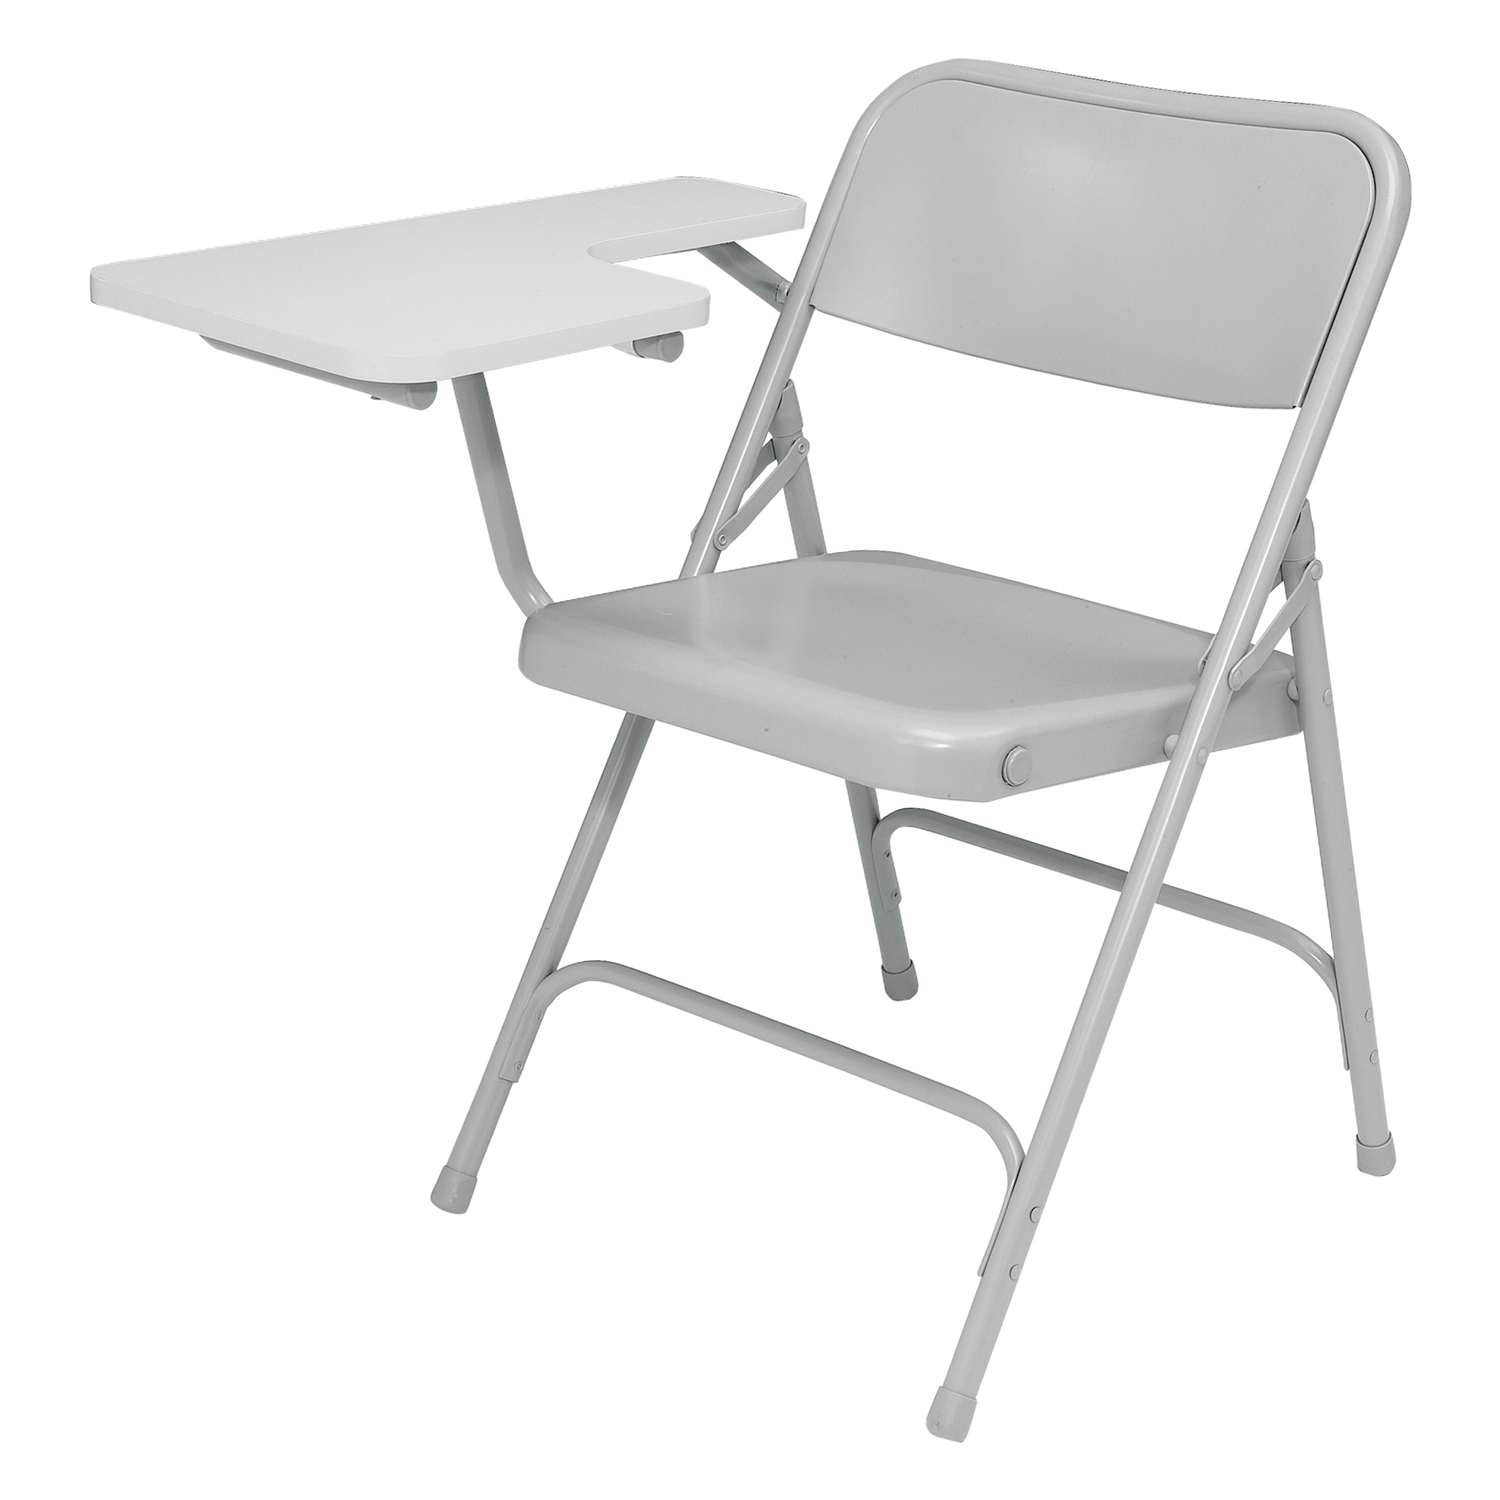 National Public Seating Ergonomic Premium Portable Steel Folding Desk Chair With Right Handed Tablet Arm Grey 2 Pack at Sears.com